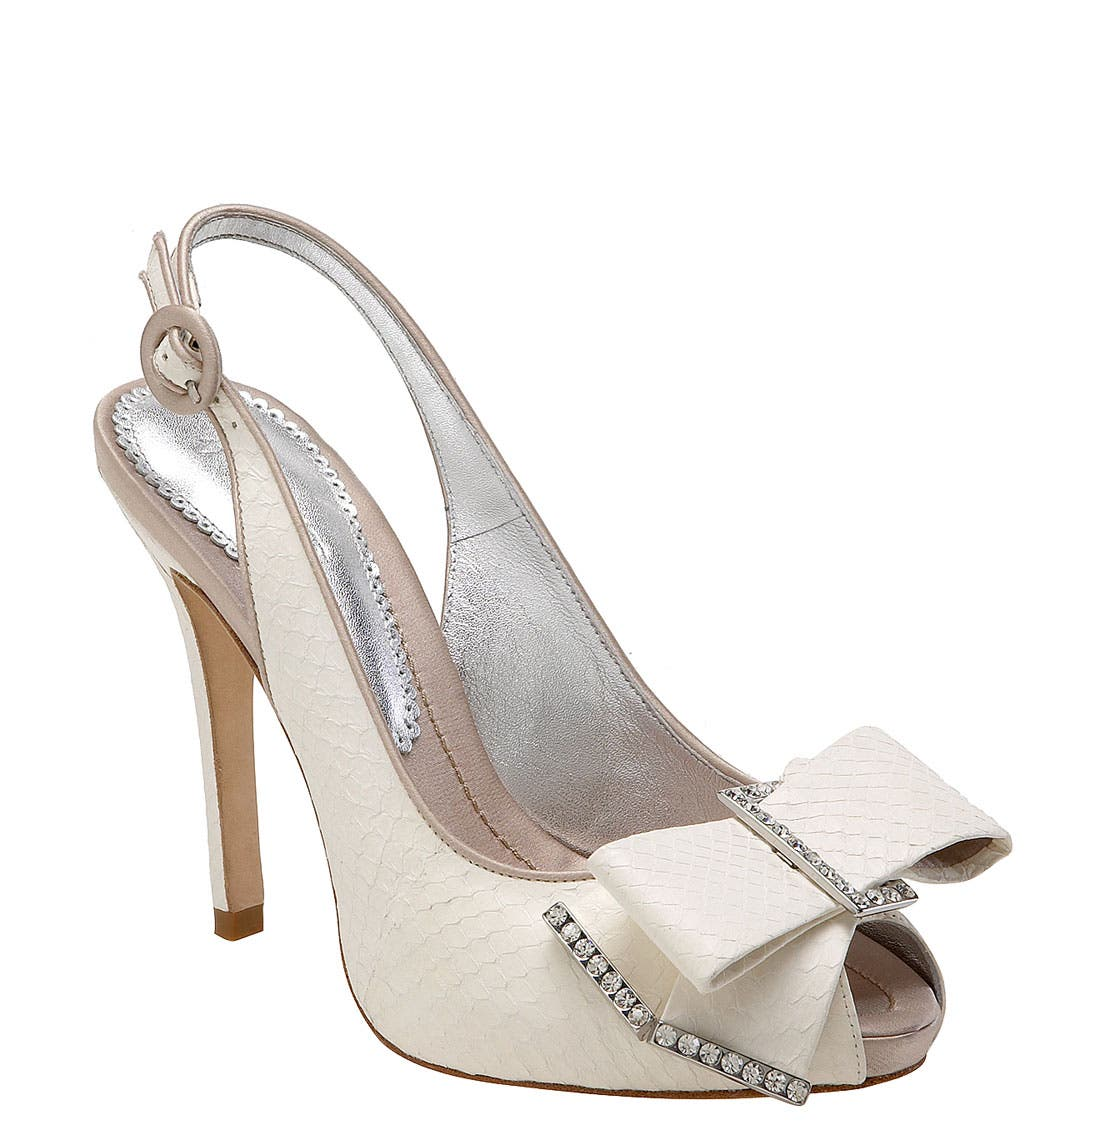 Alternate Image 1 Selected - Bourne 'Serena' Pump